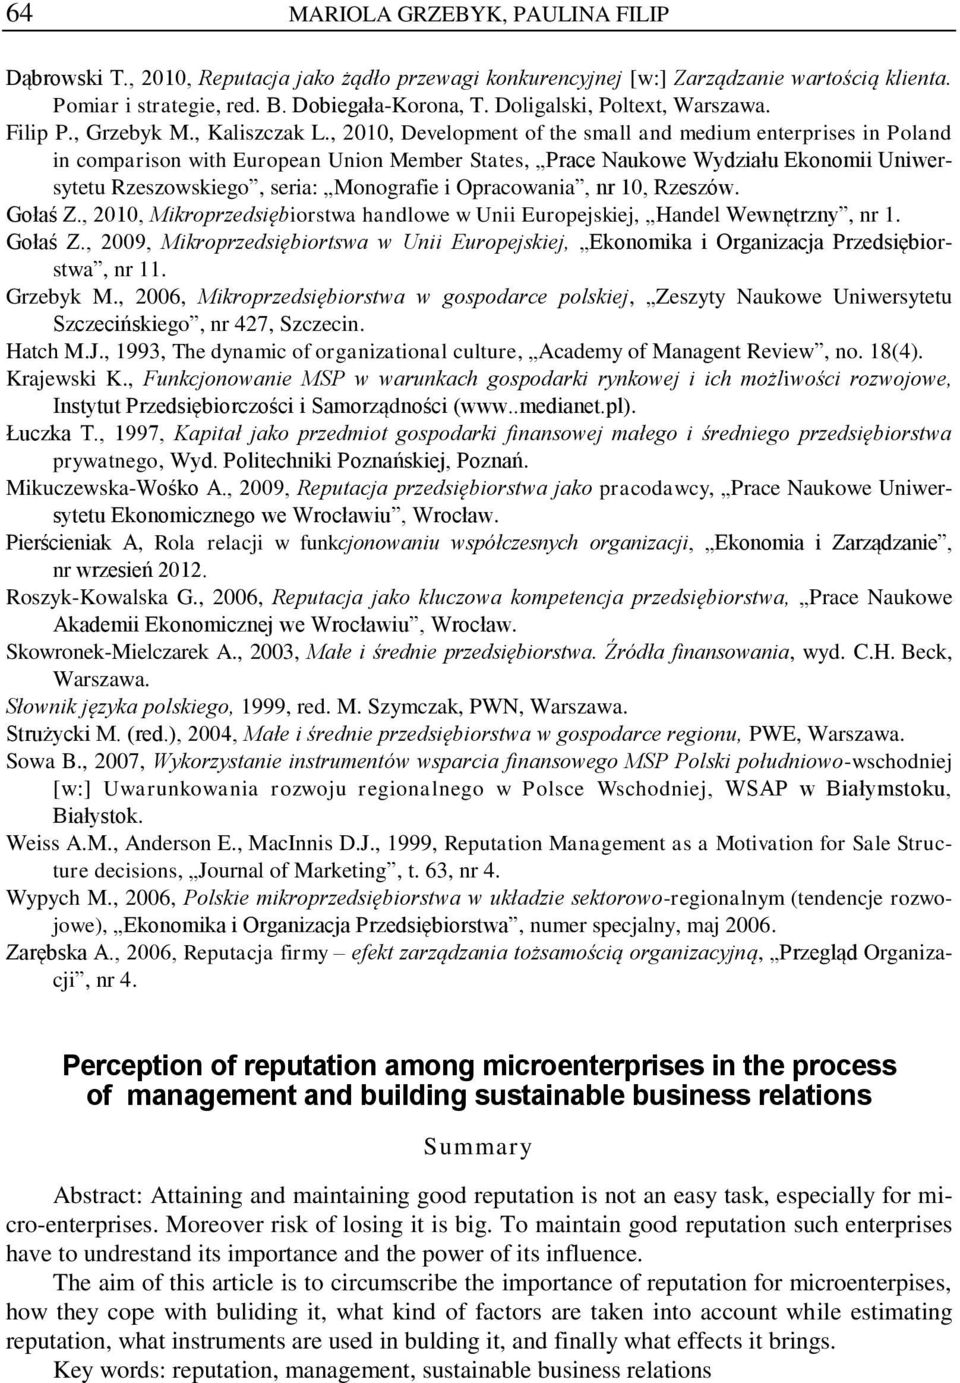 , 2010, Development of the small and medium enterprises in Poland in comparison with European Union Member States, Prace Naukowe Wydziału Ekonomii Uniwersytetu Rzeszowskiego, seria: Monografie i